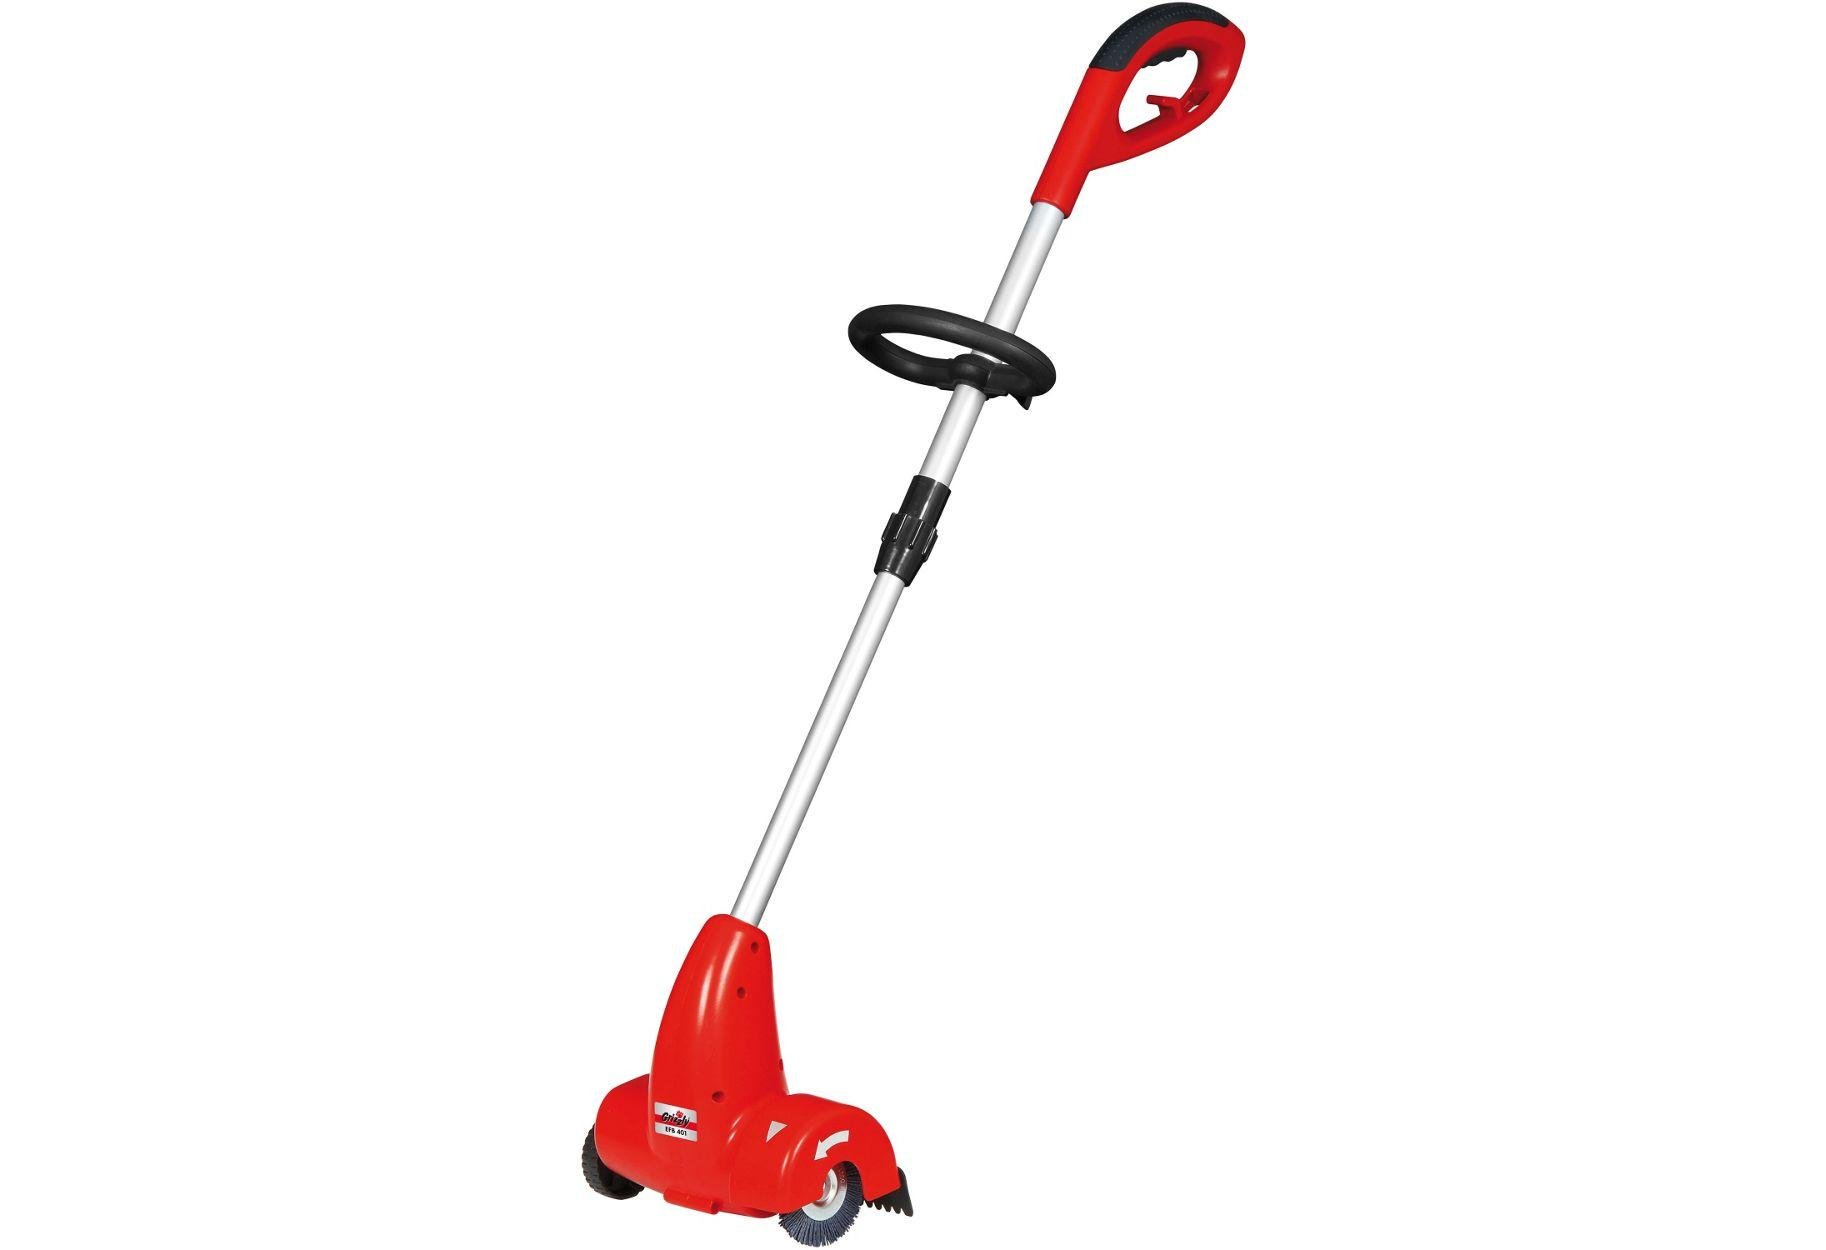 grizzly tools 400w electric patio cleaner. Black Bedroom Furniture Sets. Home Design Ideas